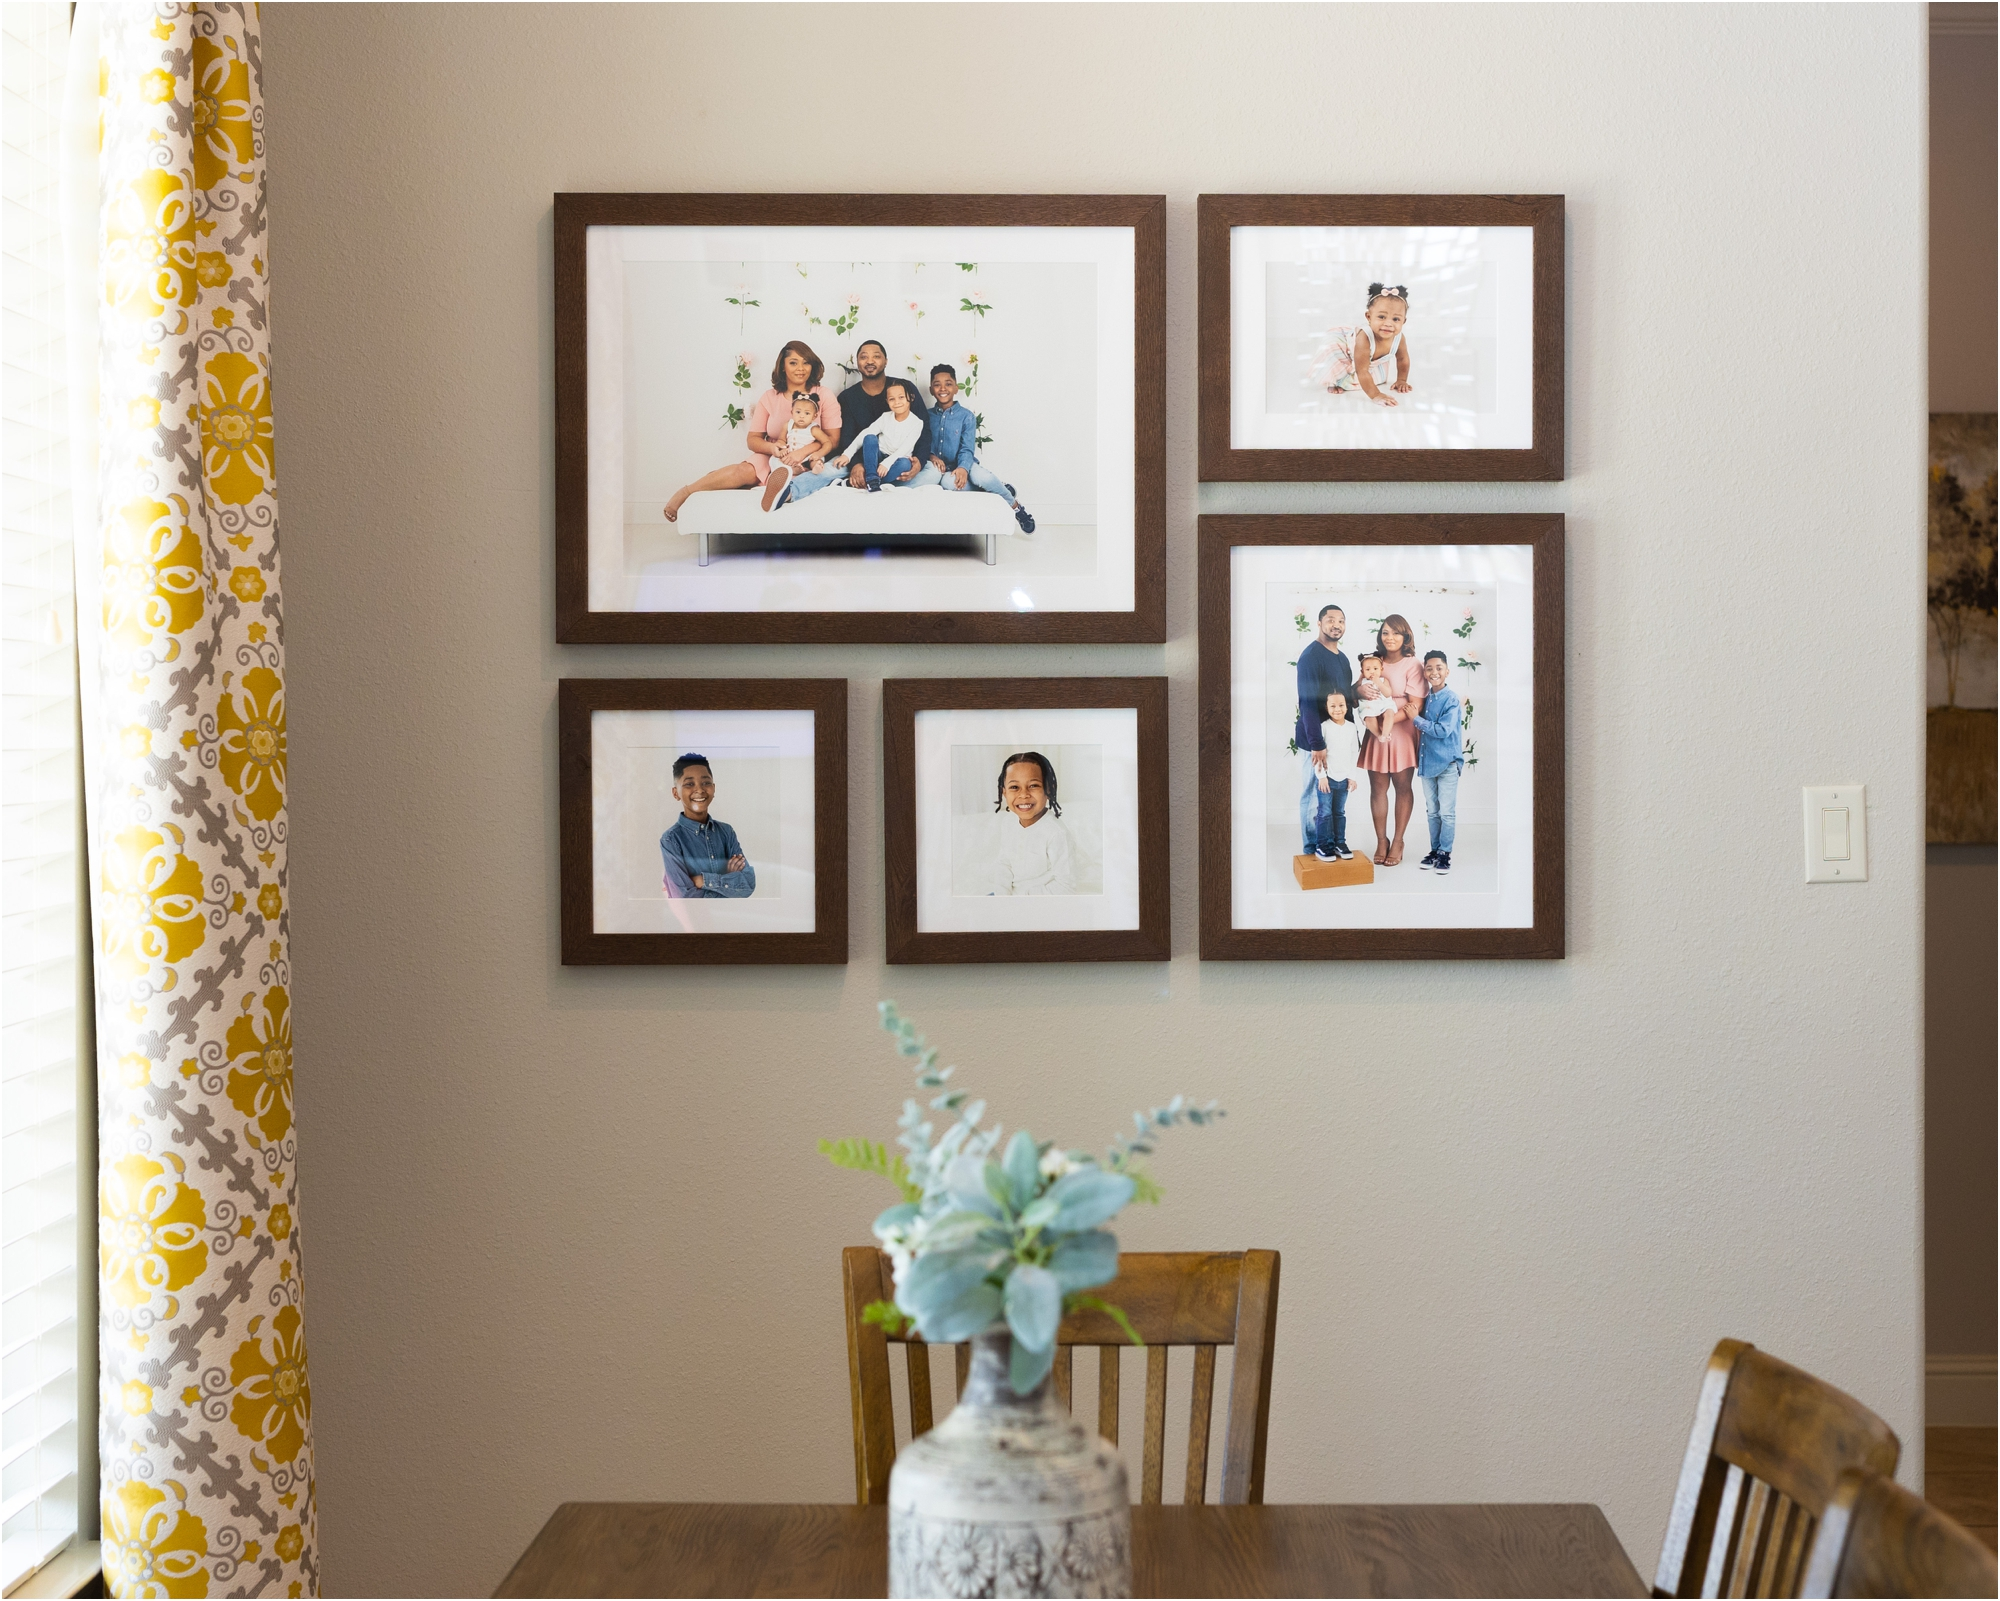 Final wall art design in client's home by Lifetime of Clicks Photography.